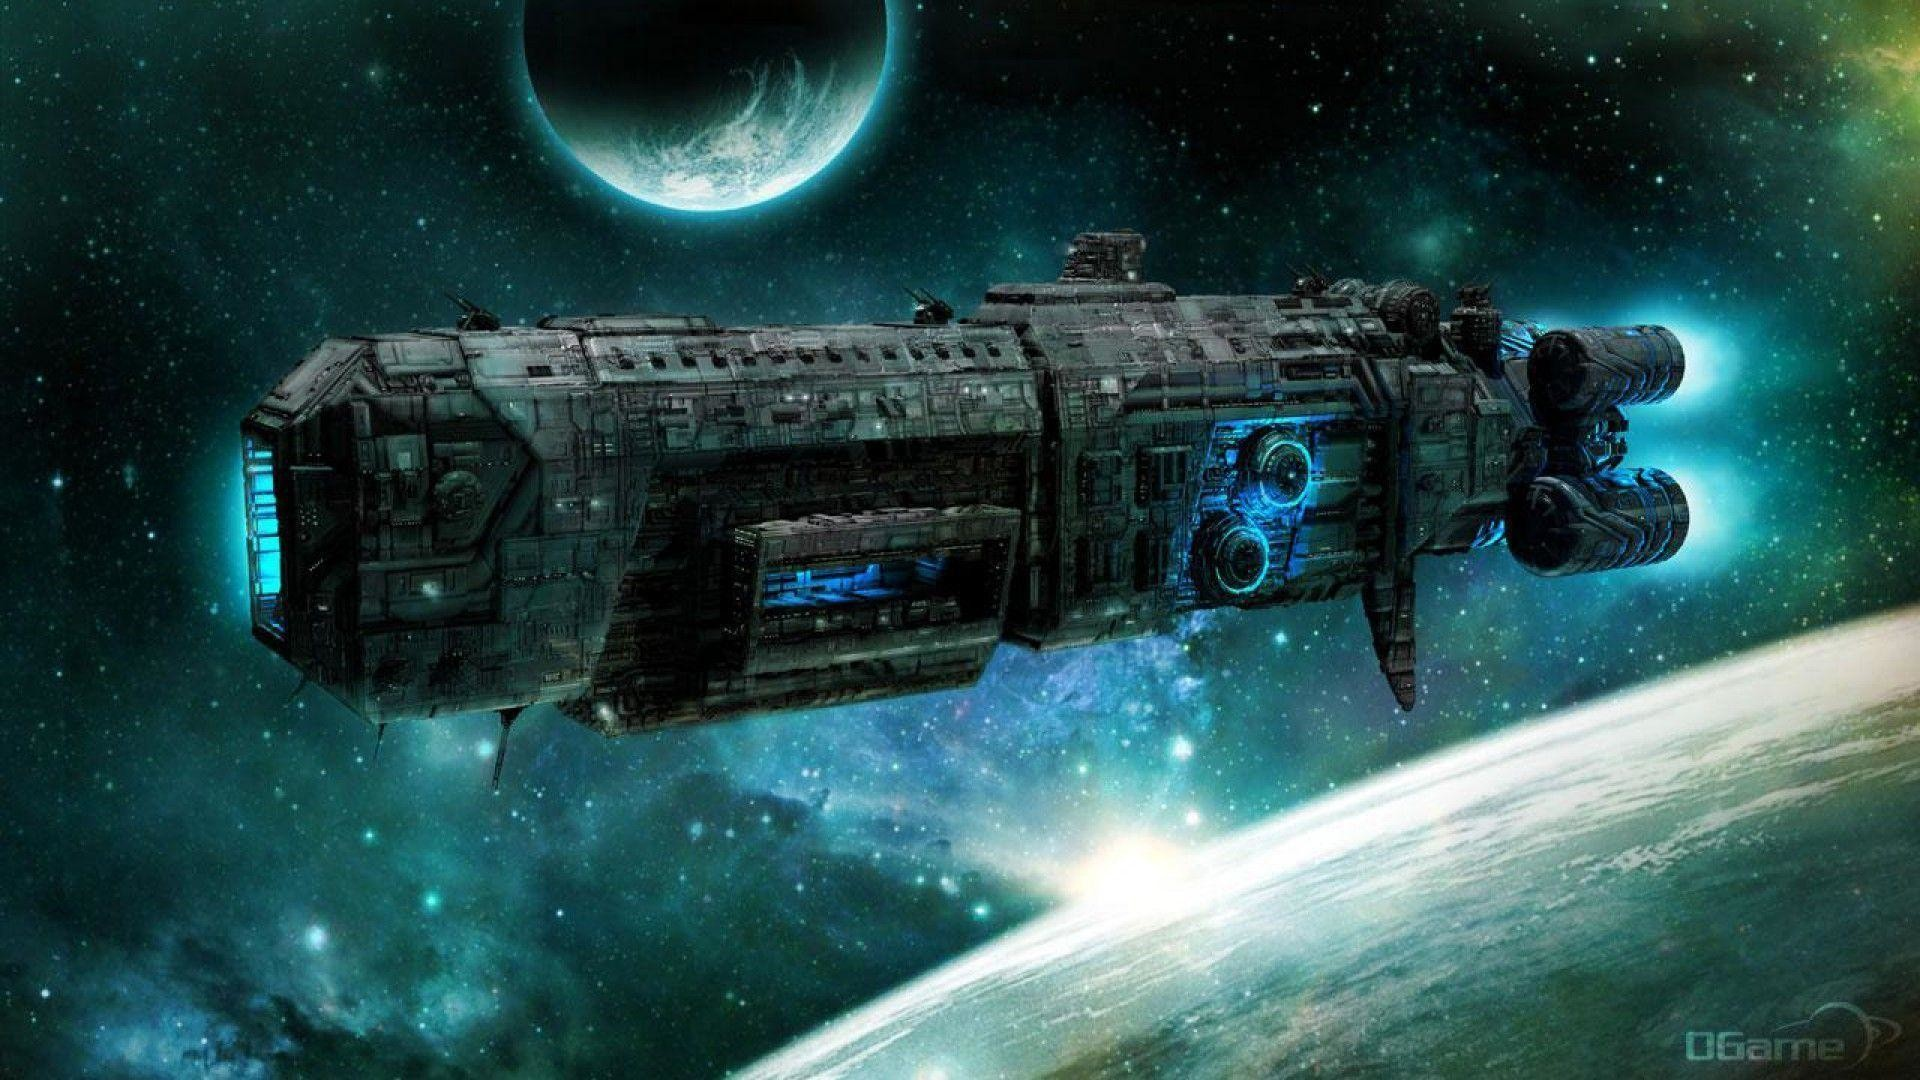 1920x1080 - Spaceship Wallpapers 10